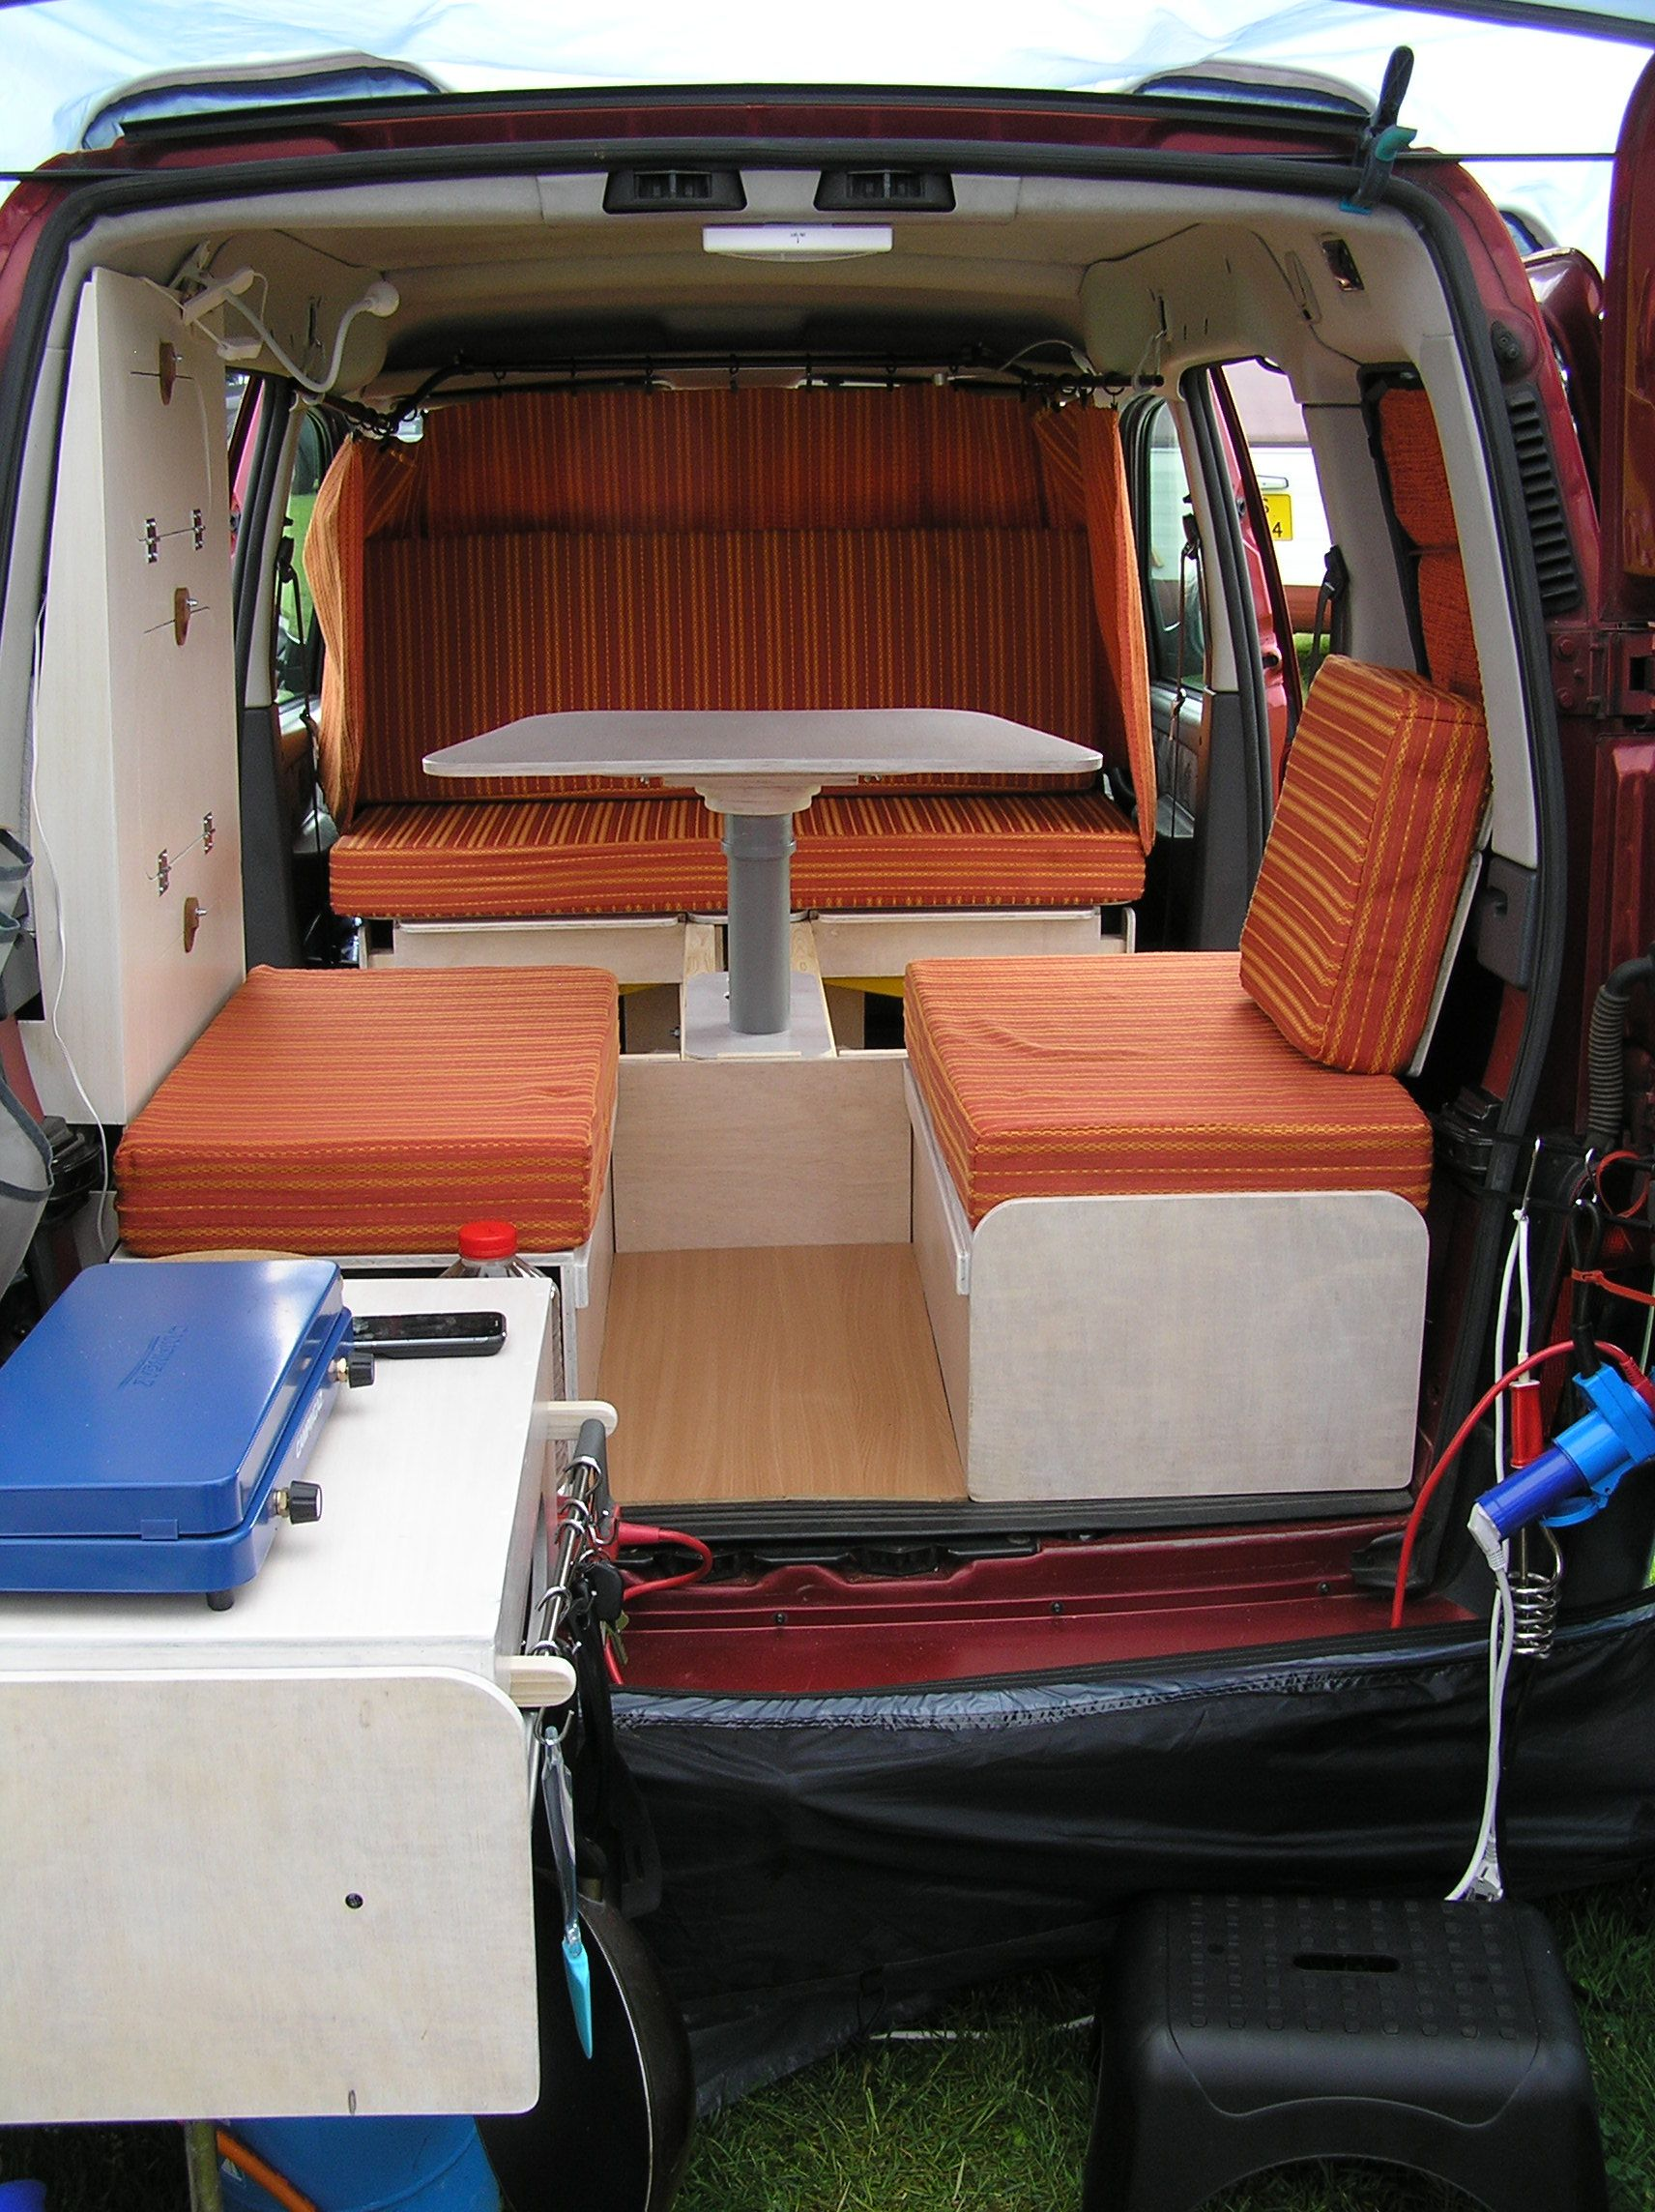 Buses Cheminées Diy Mini Camper Project Made And Designed By Thema